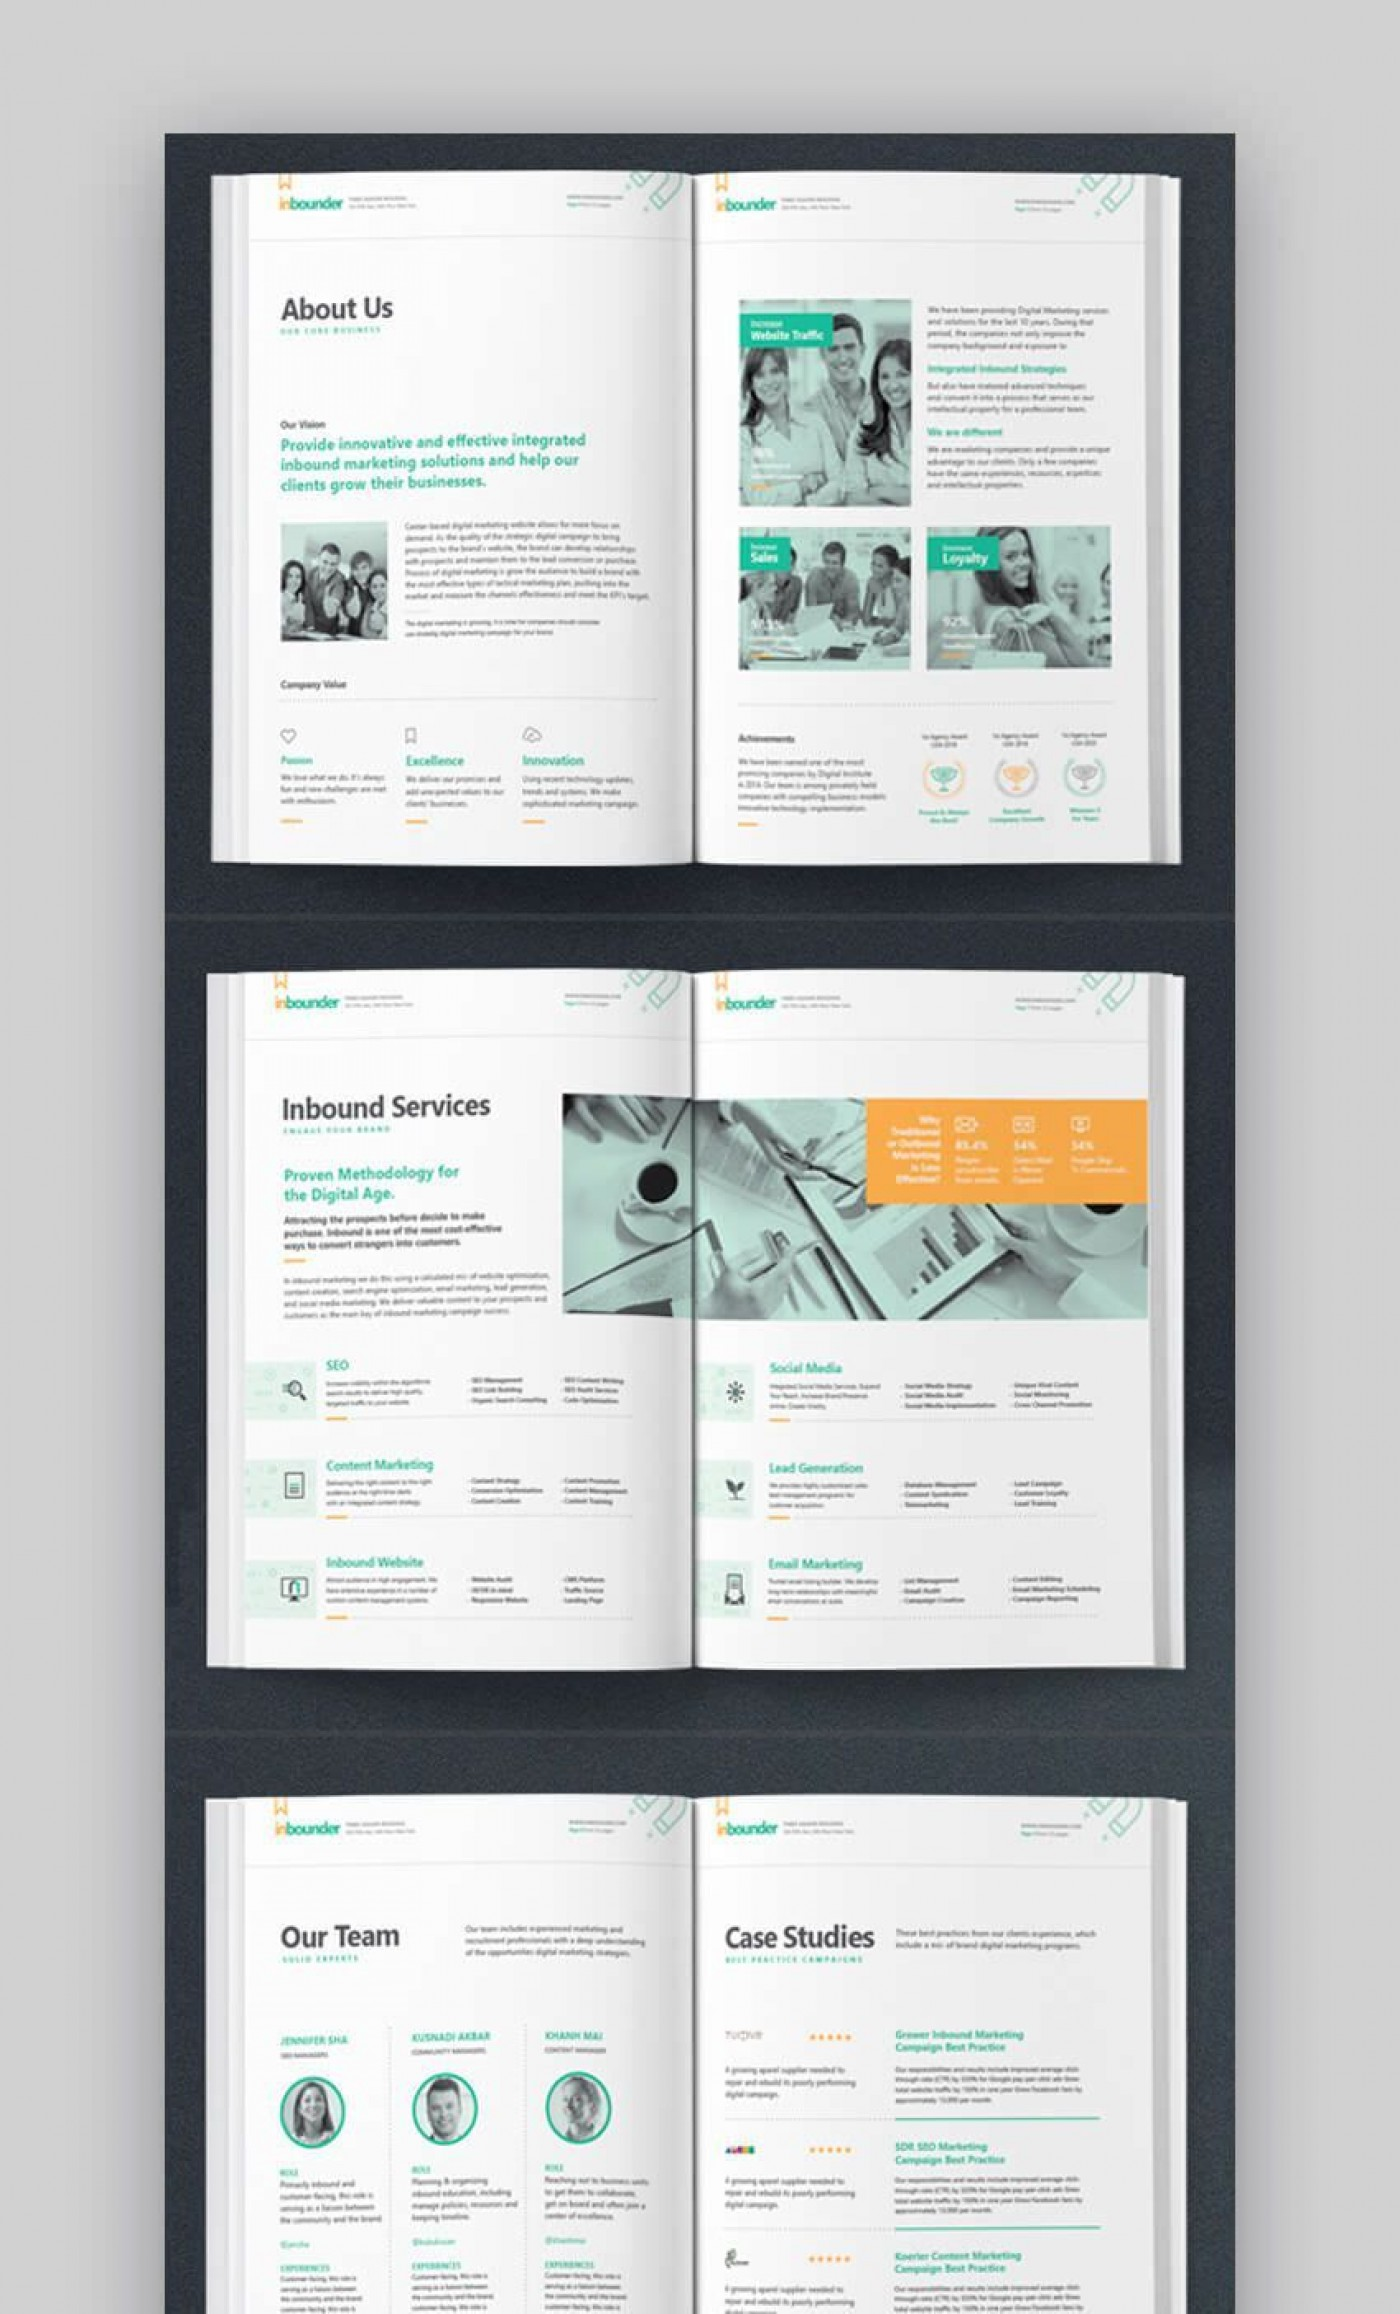 002 Outstanding Social Media Proposal Template 2019 High Resolution 1400